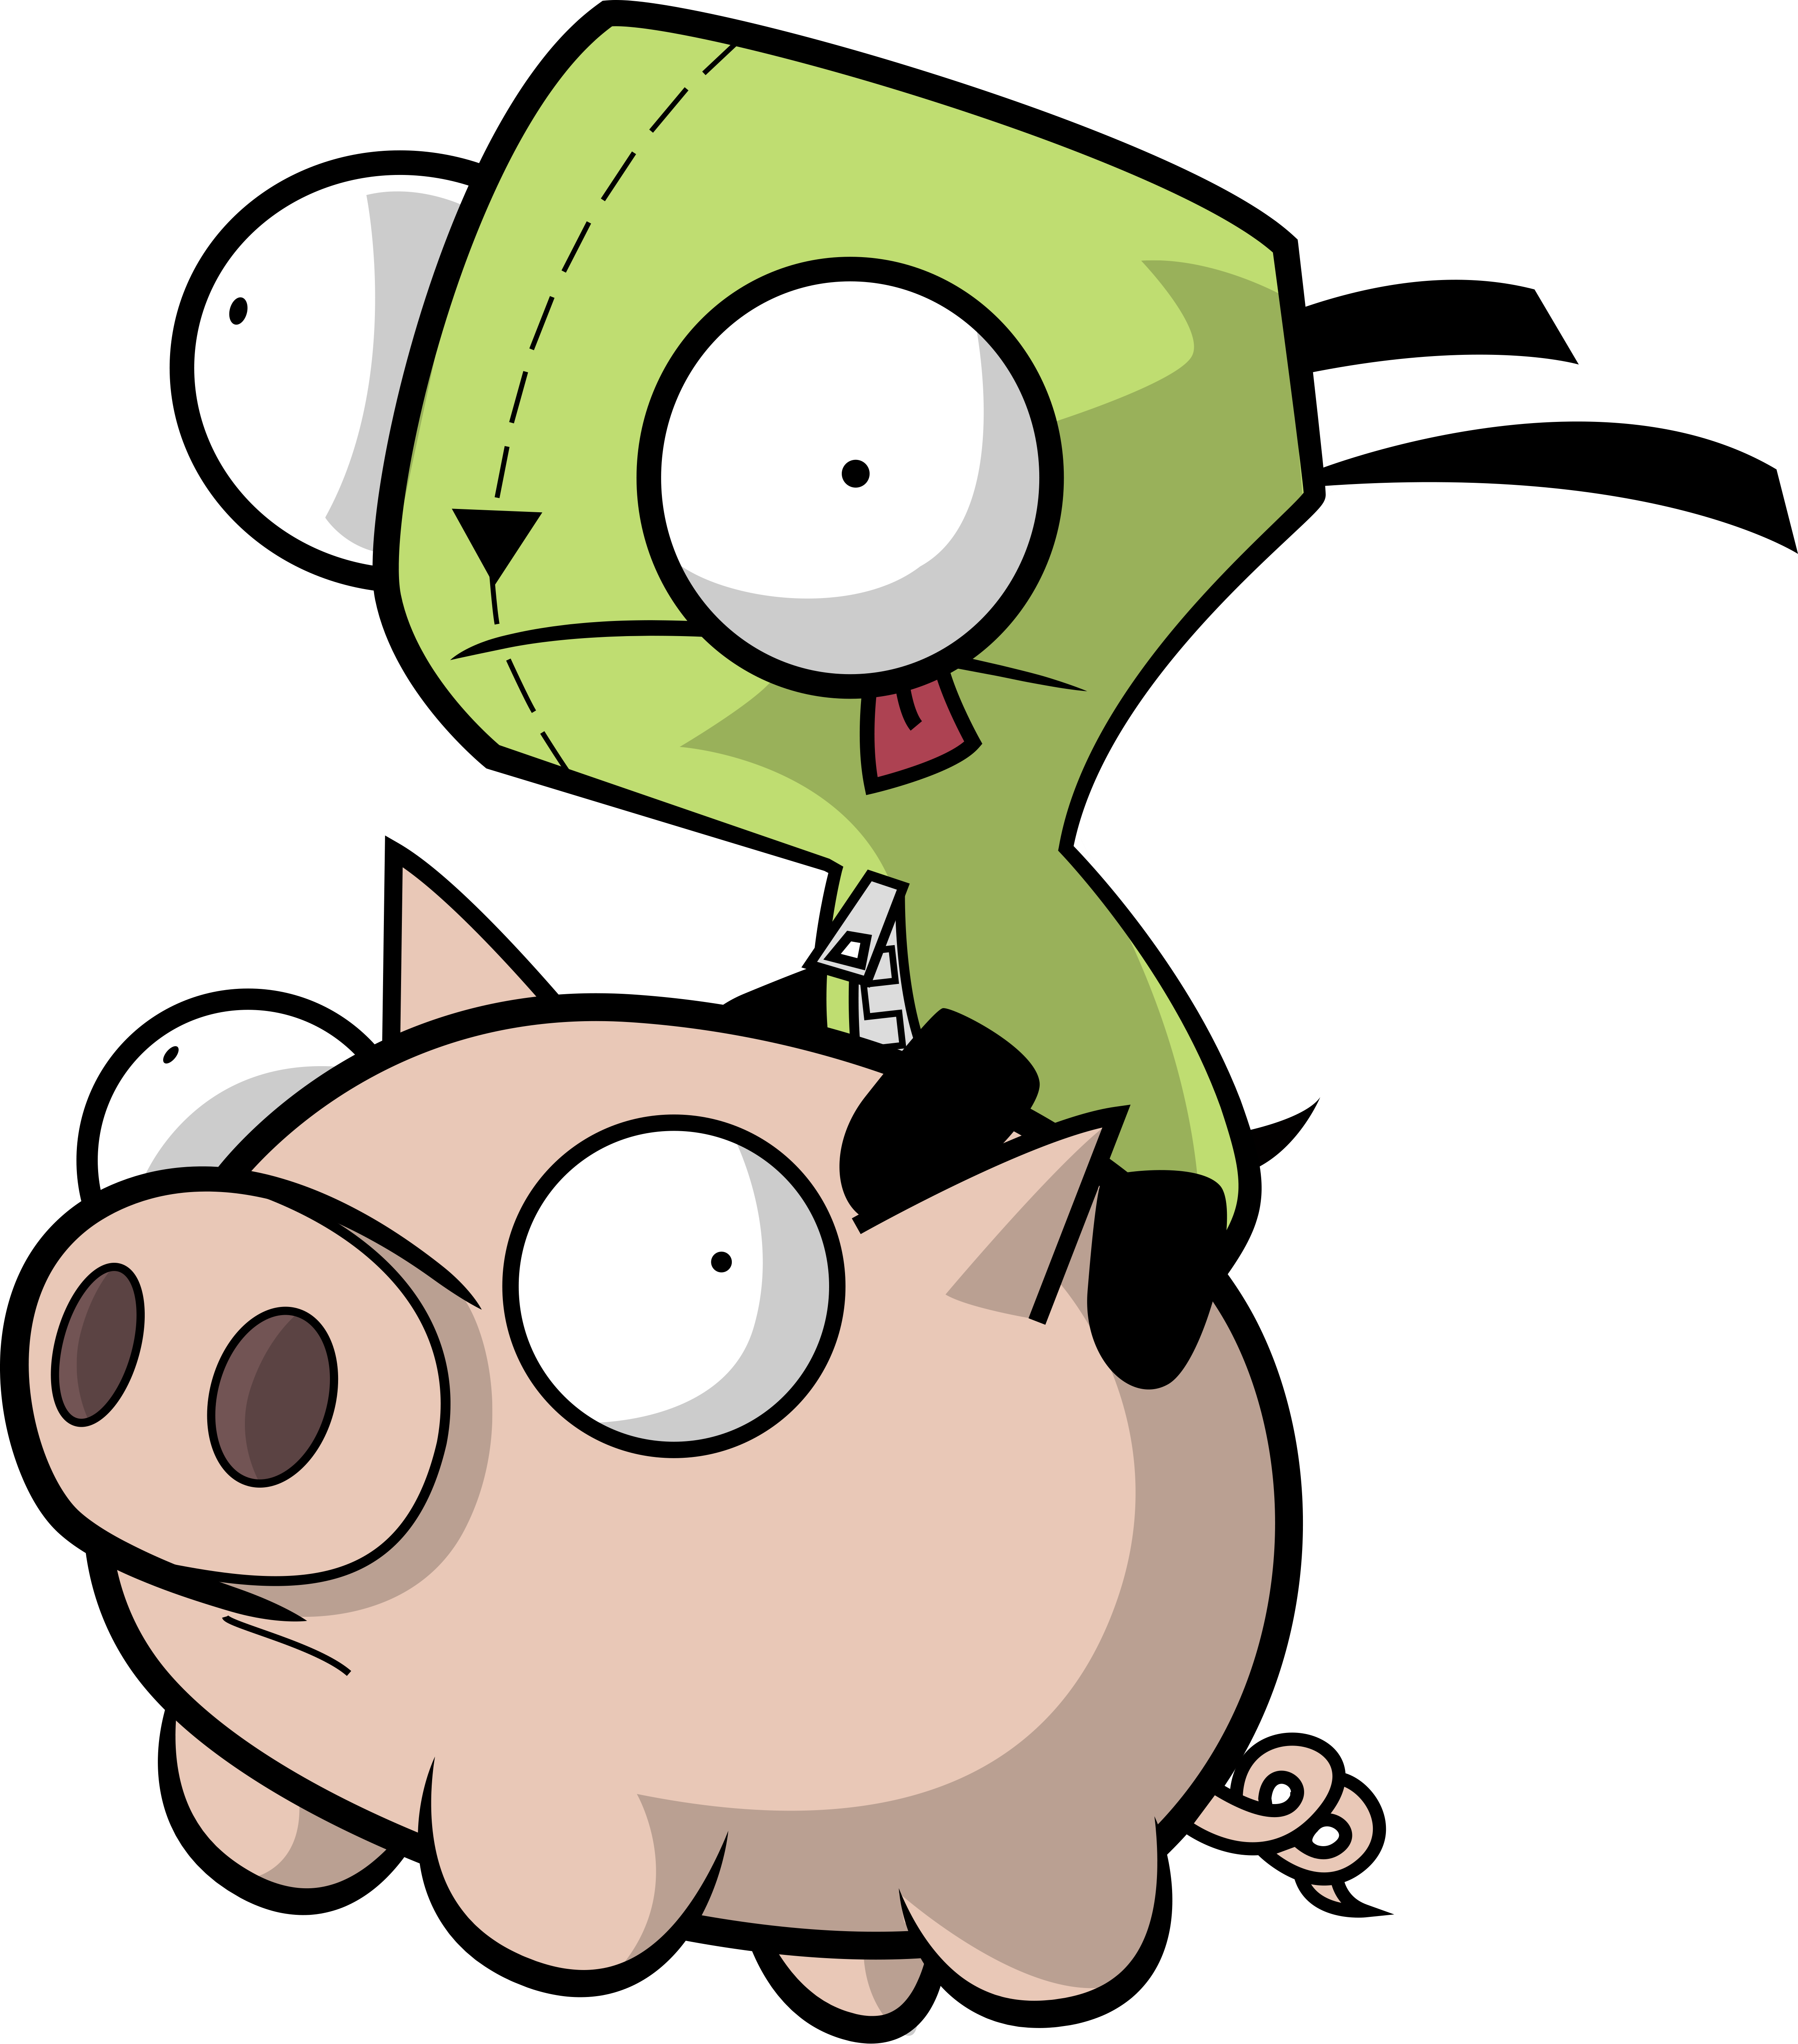 zim and gir relationship help